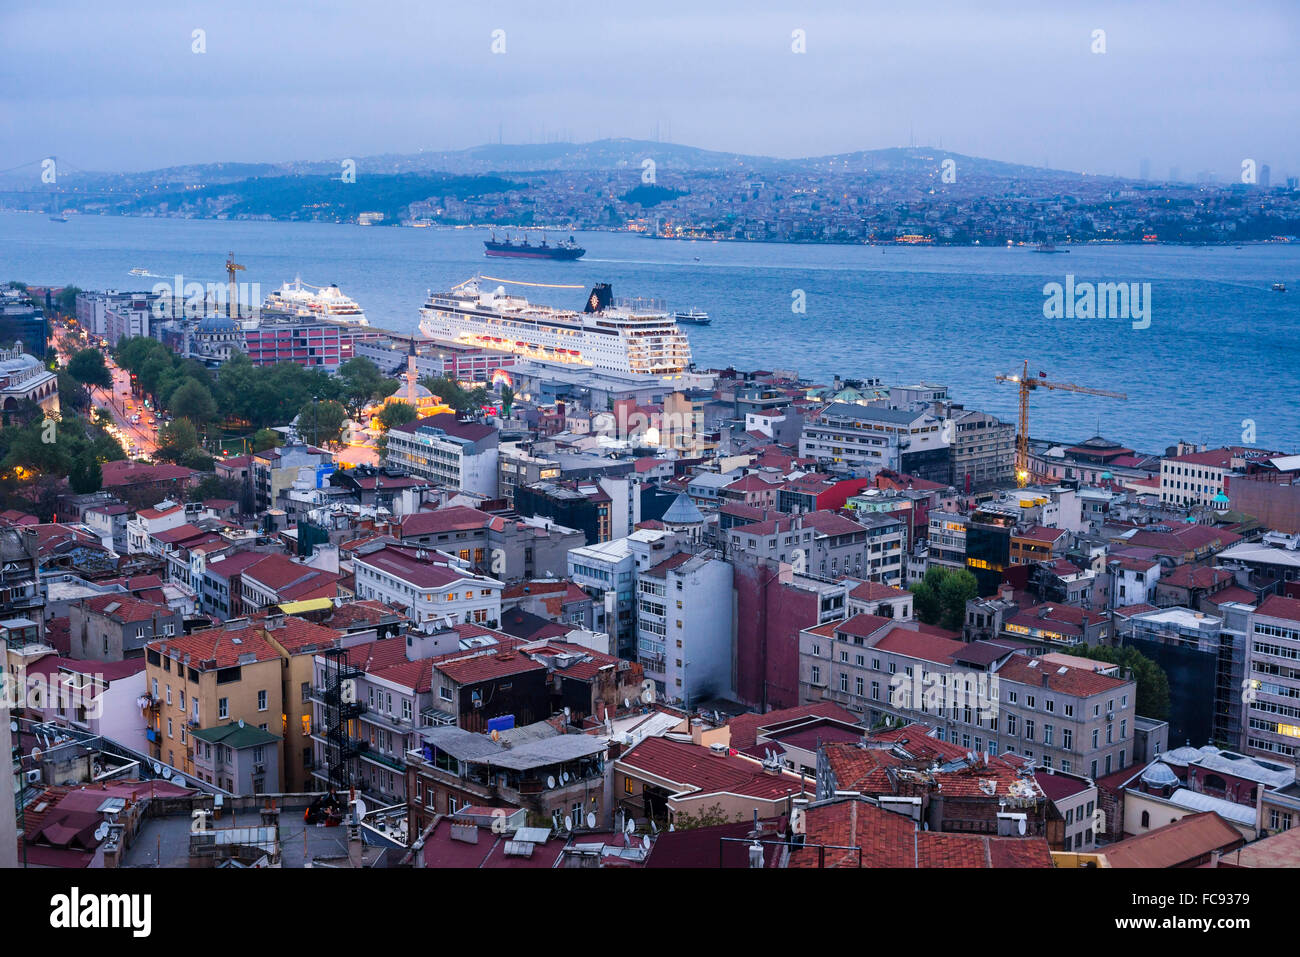 Bosphorus Strait and cruise ship at night seen from Galata Tower, Istanbul, Turkey, Europe - Stock Image